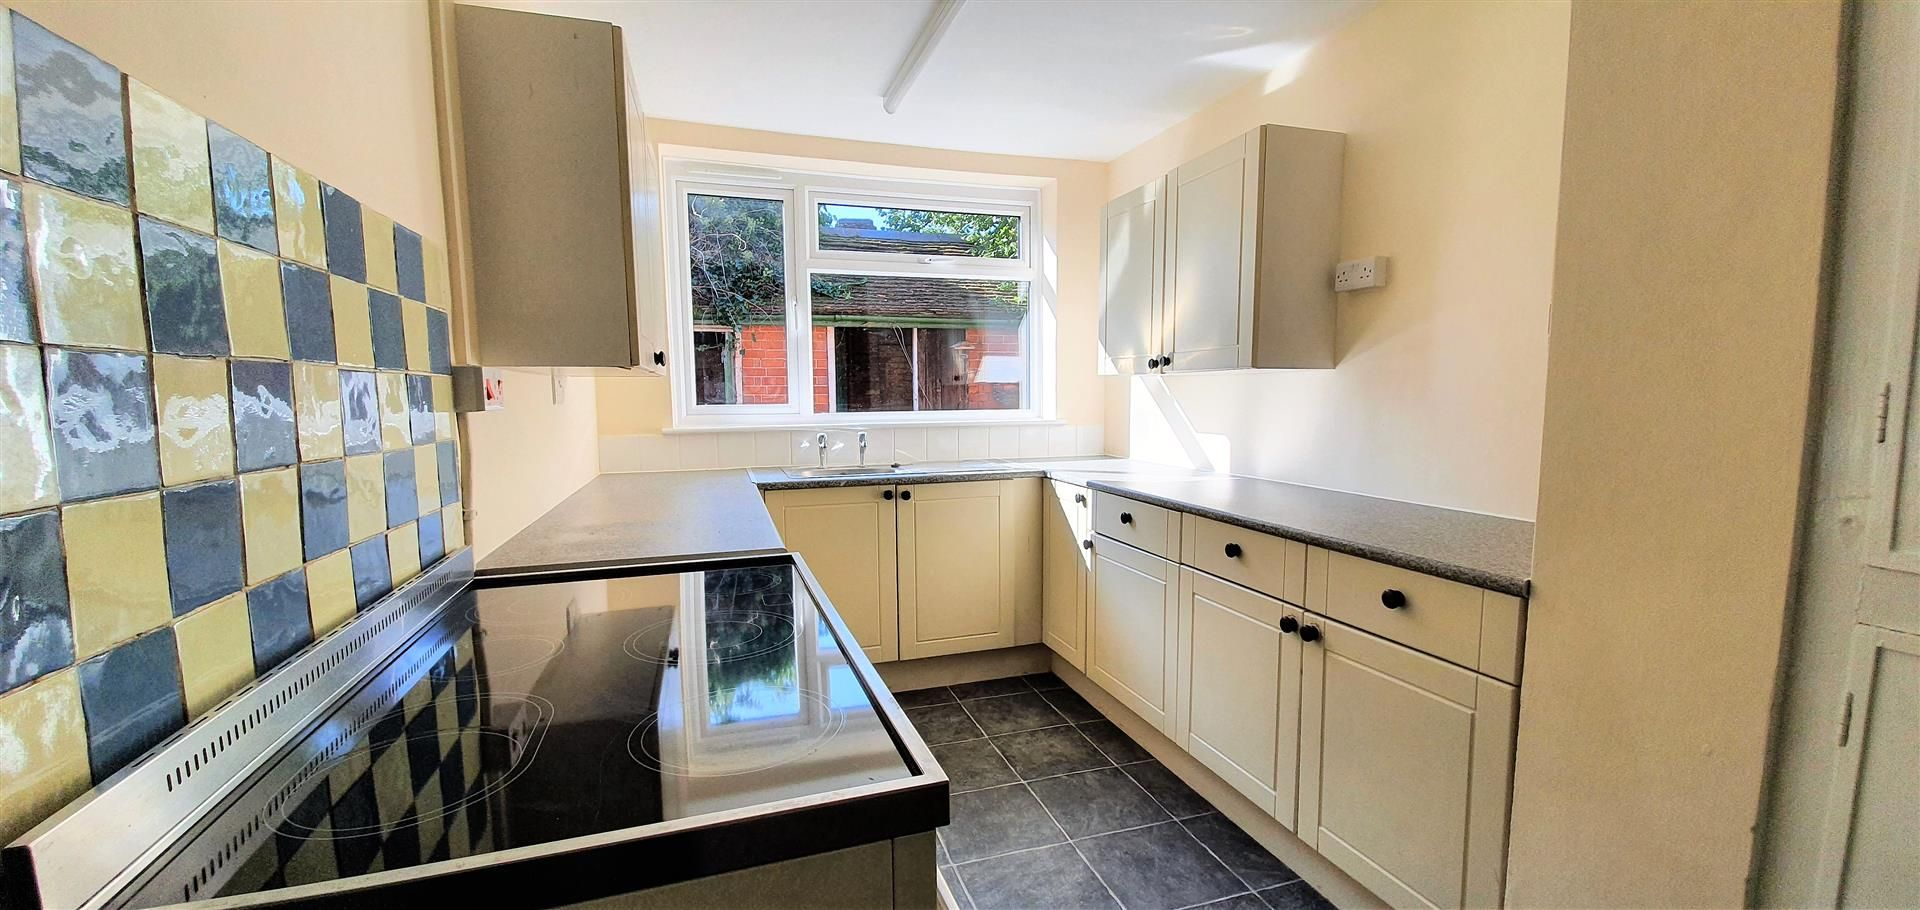 4 bed house to rent in Breinton 3